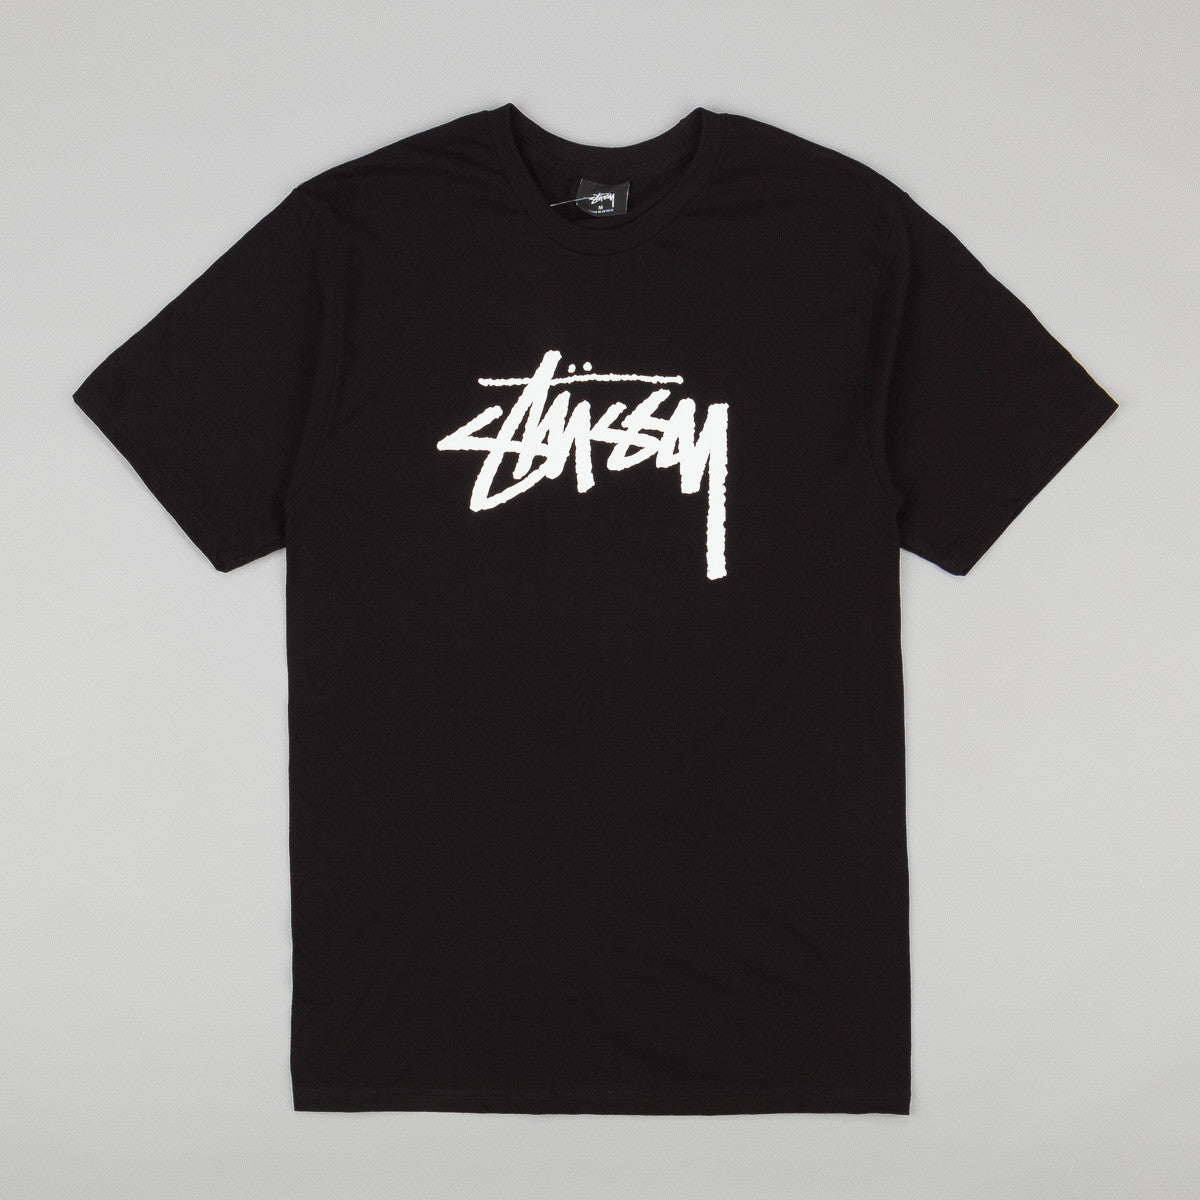 Stussy Stock T-Shirt - Black